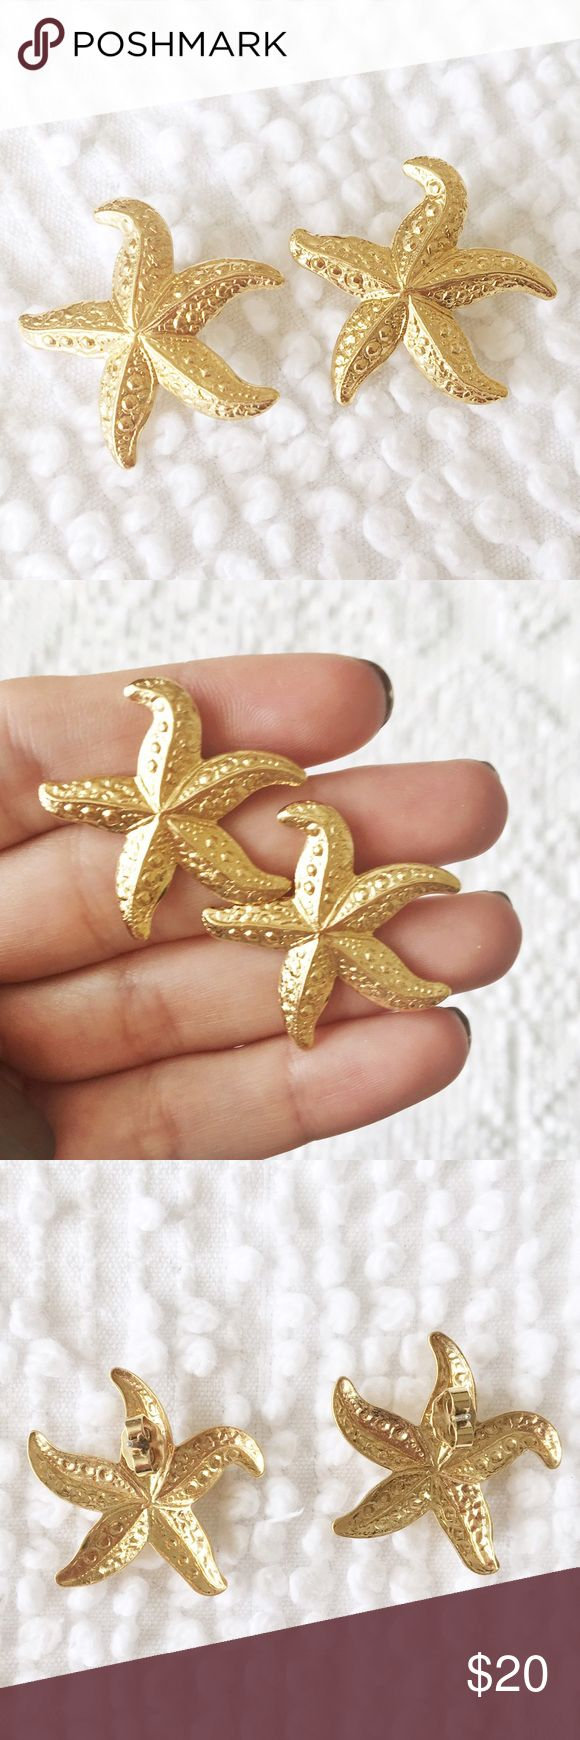 Vintage Mermaid Sea Star Earrings  Statement Earring Sized  Color: Gold   Phenomenal Vintage   Metal    ✨ Price is FIRM unless bundled  ✨ All items from a smoke free home  ✨ Please ask questions prior to purchase Vintage Jewelry Earrings